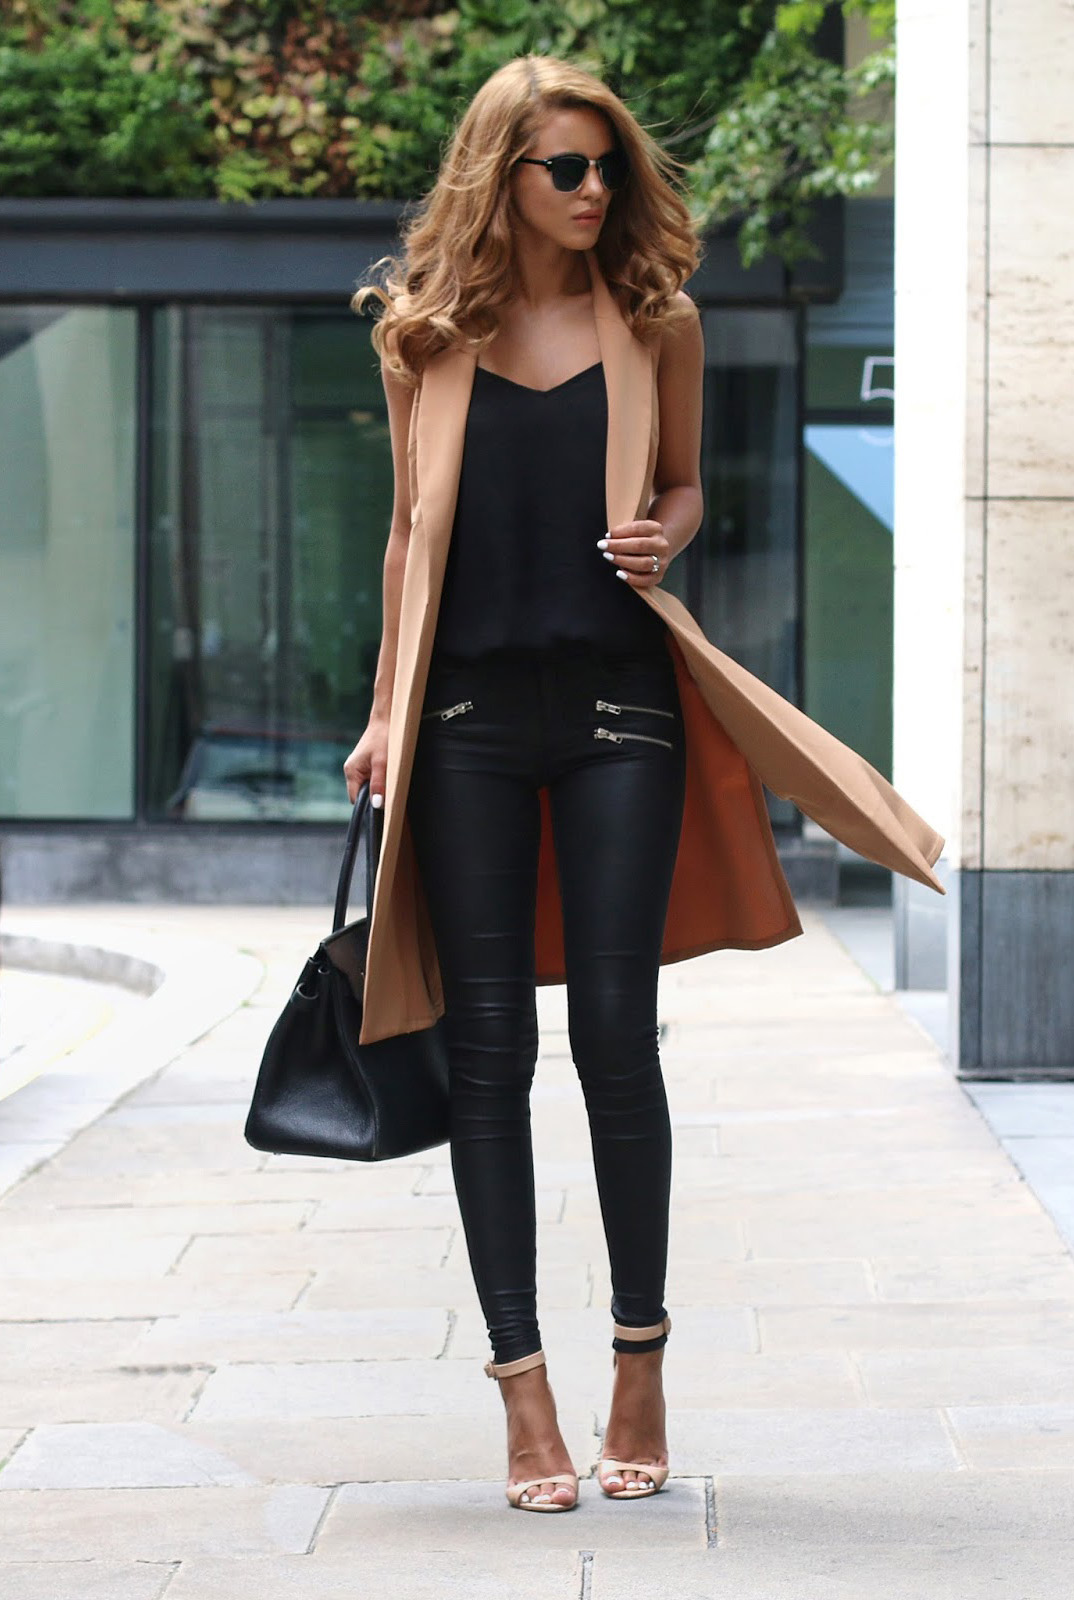 Black And Camel Outfits - This Is How To Style The Look - Just The ...